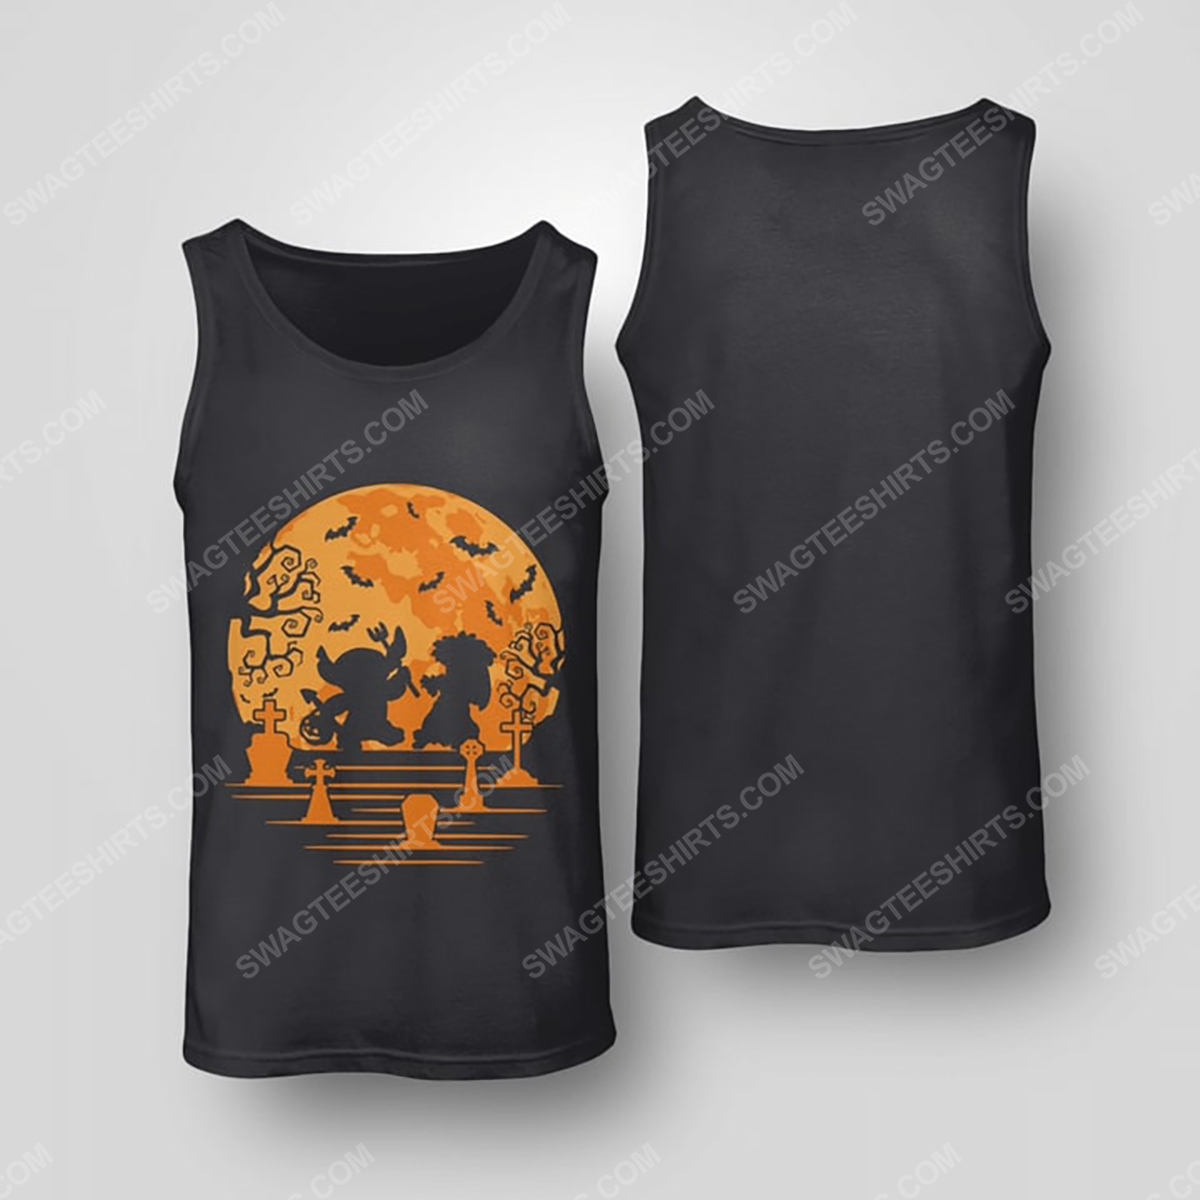 Lilo and stitch in halloween night tank top(1)